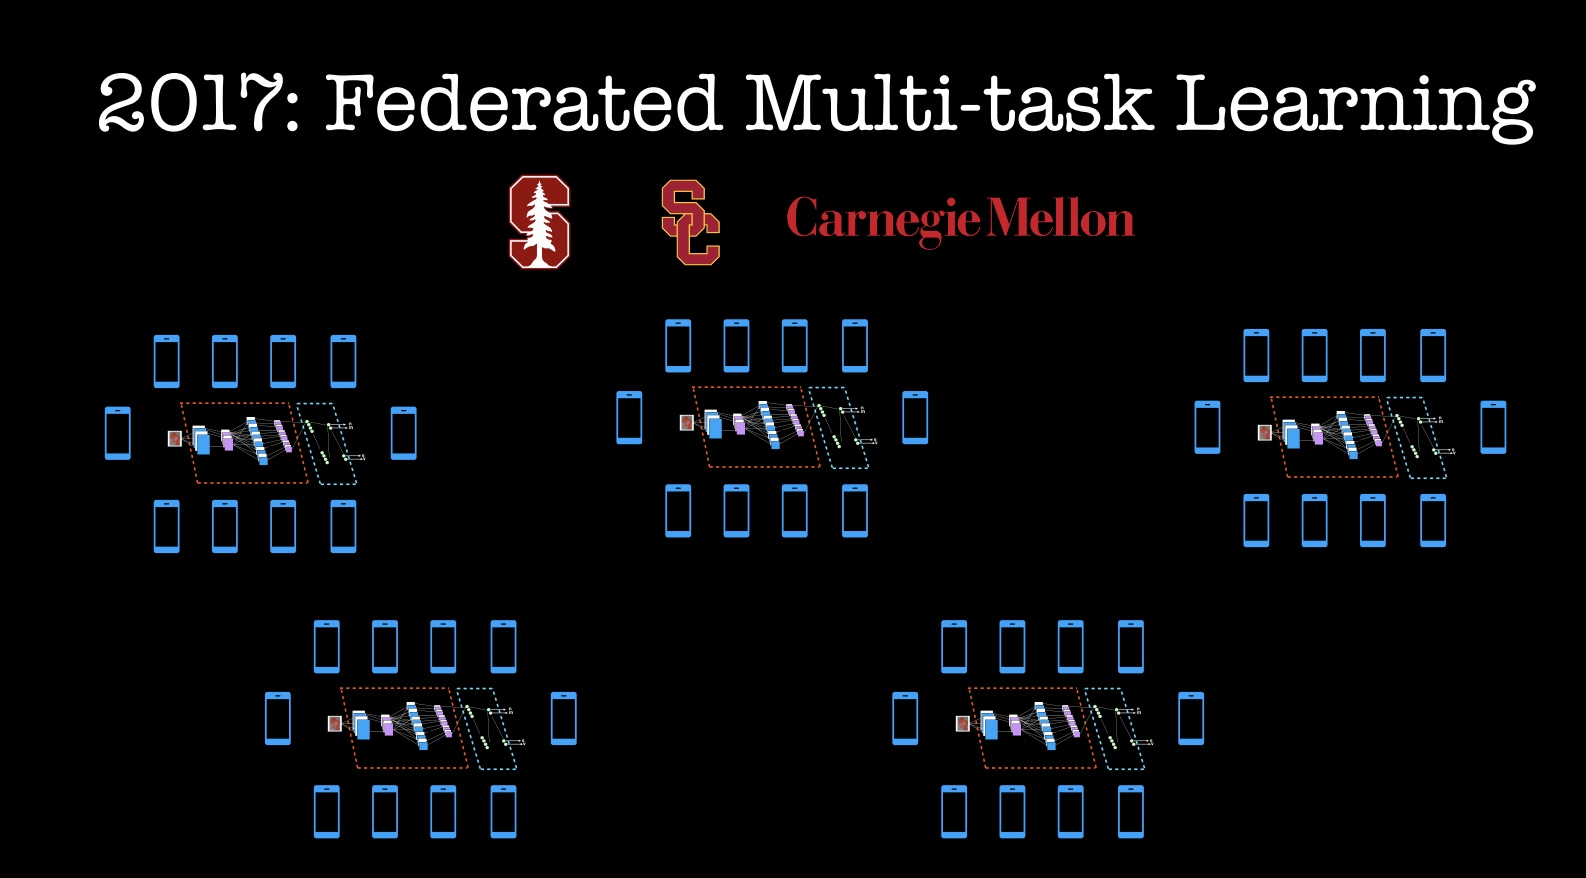 2017 Federated Multi-task Learning